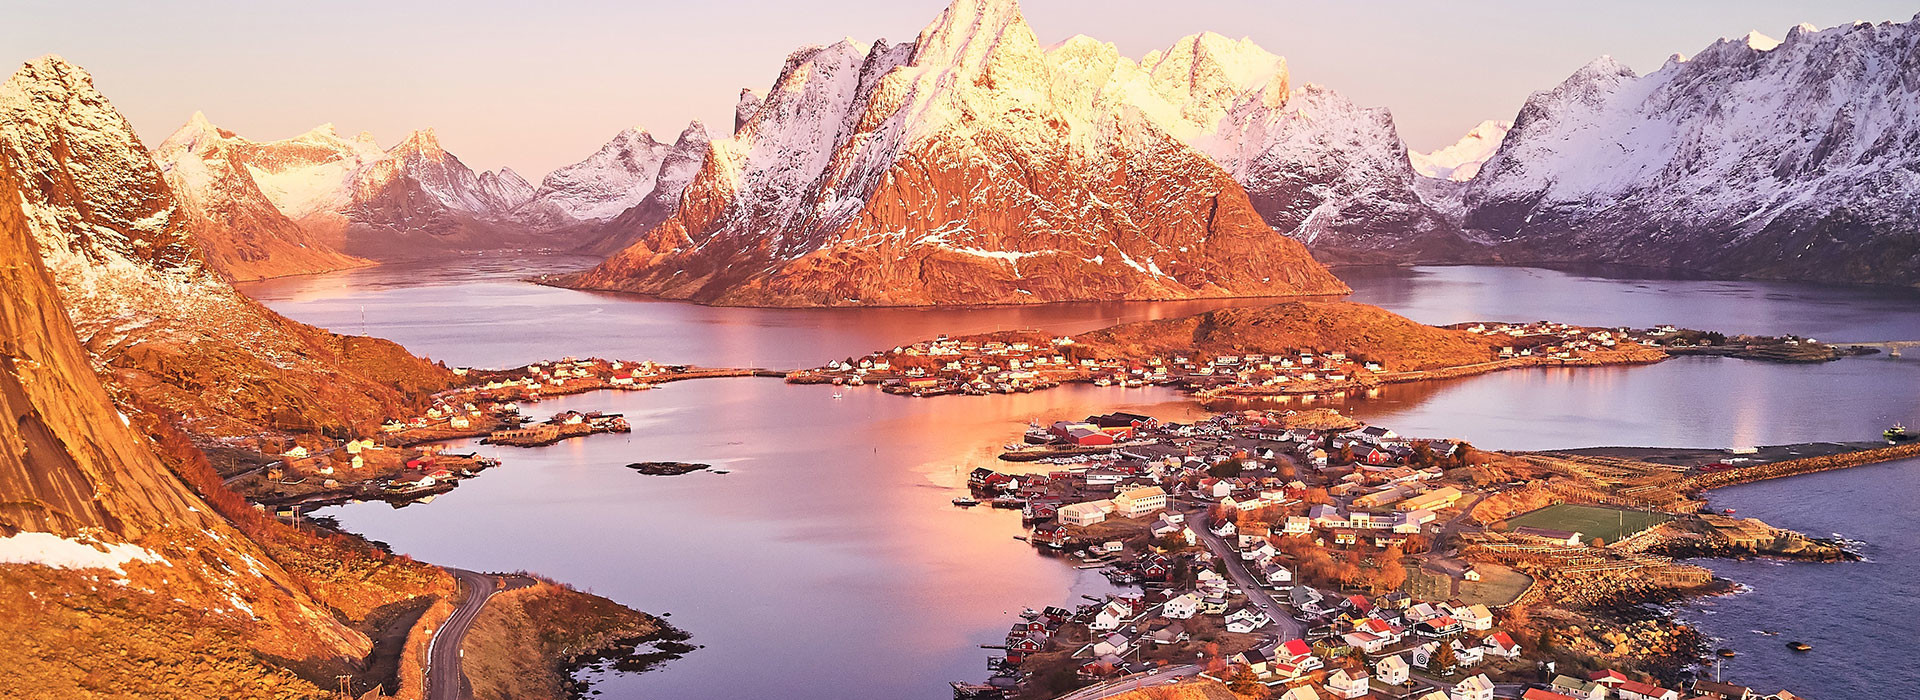 NORWAY, LOFOTEN: FJORD, WHALES AND SAILING